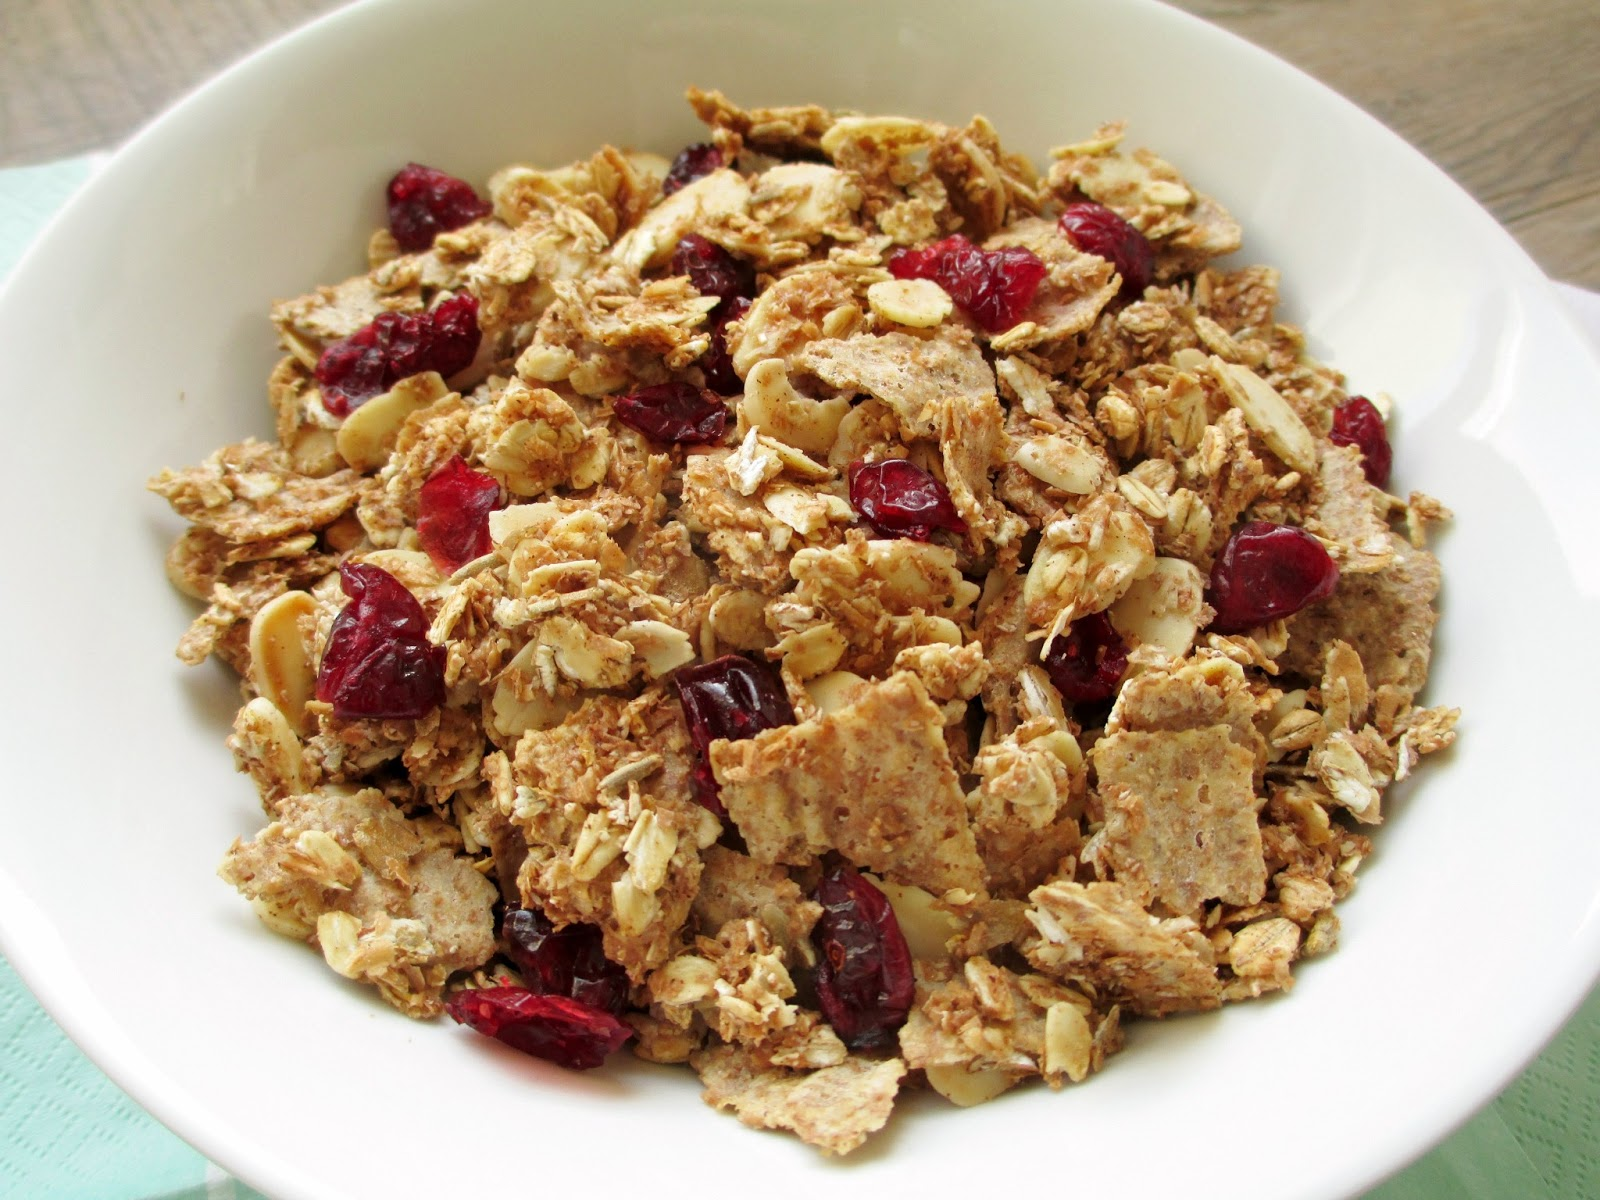 Vanilla spice bran flake cereal with almonds and cranberries bran flake cereal with almonds and cranberries ccuart Gallery